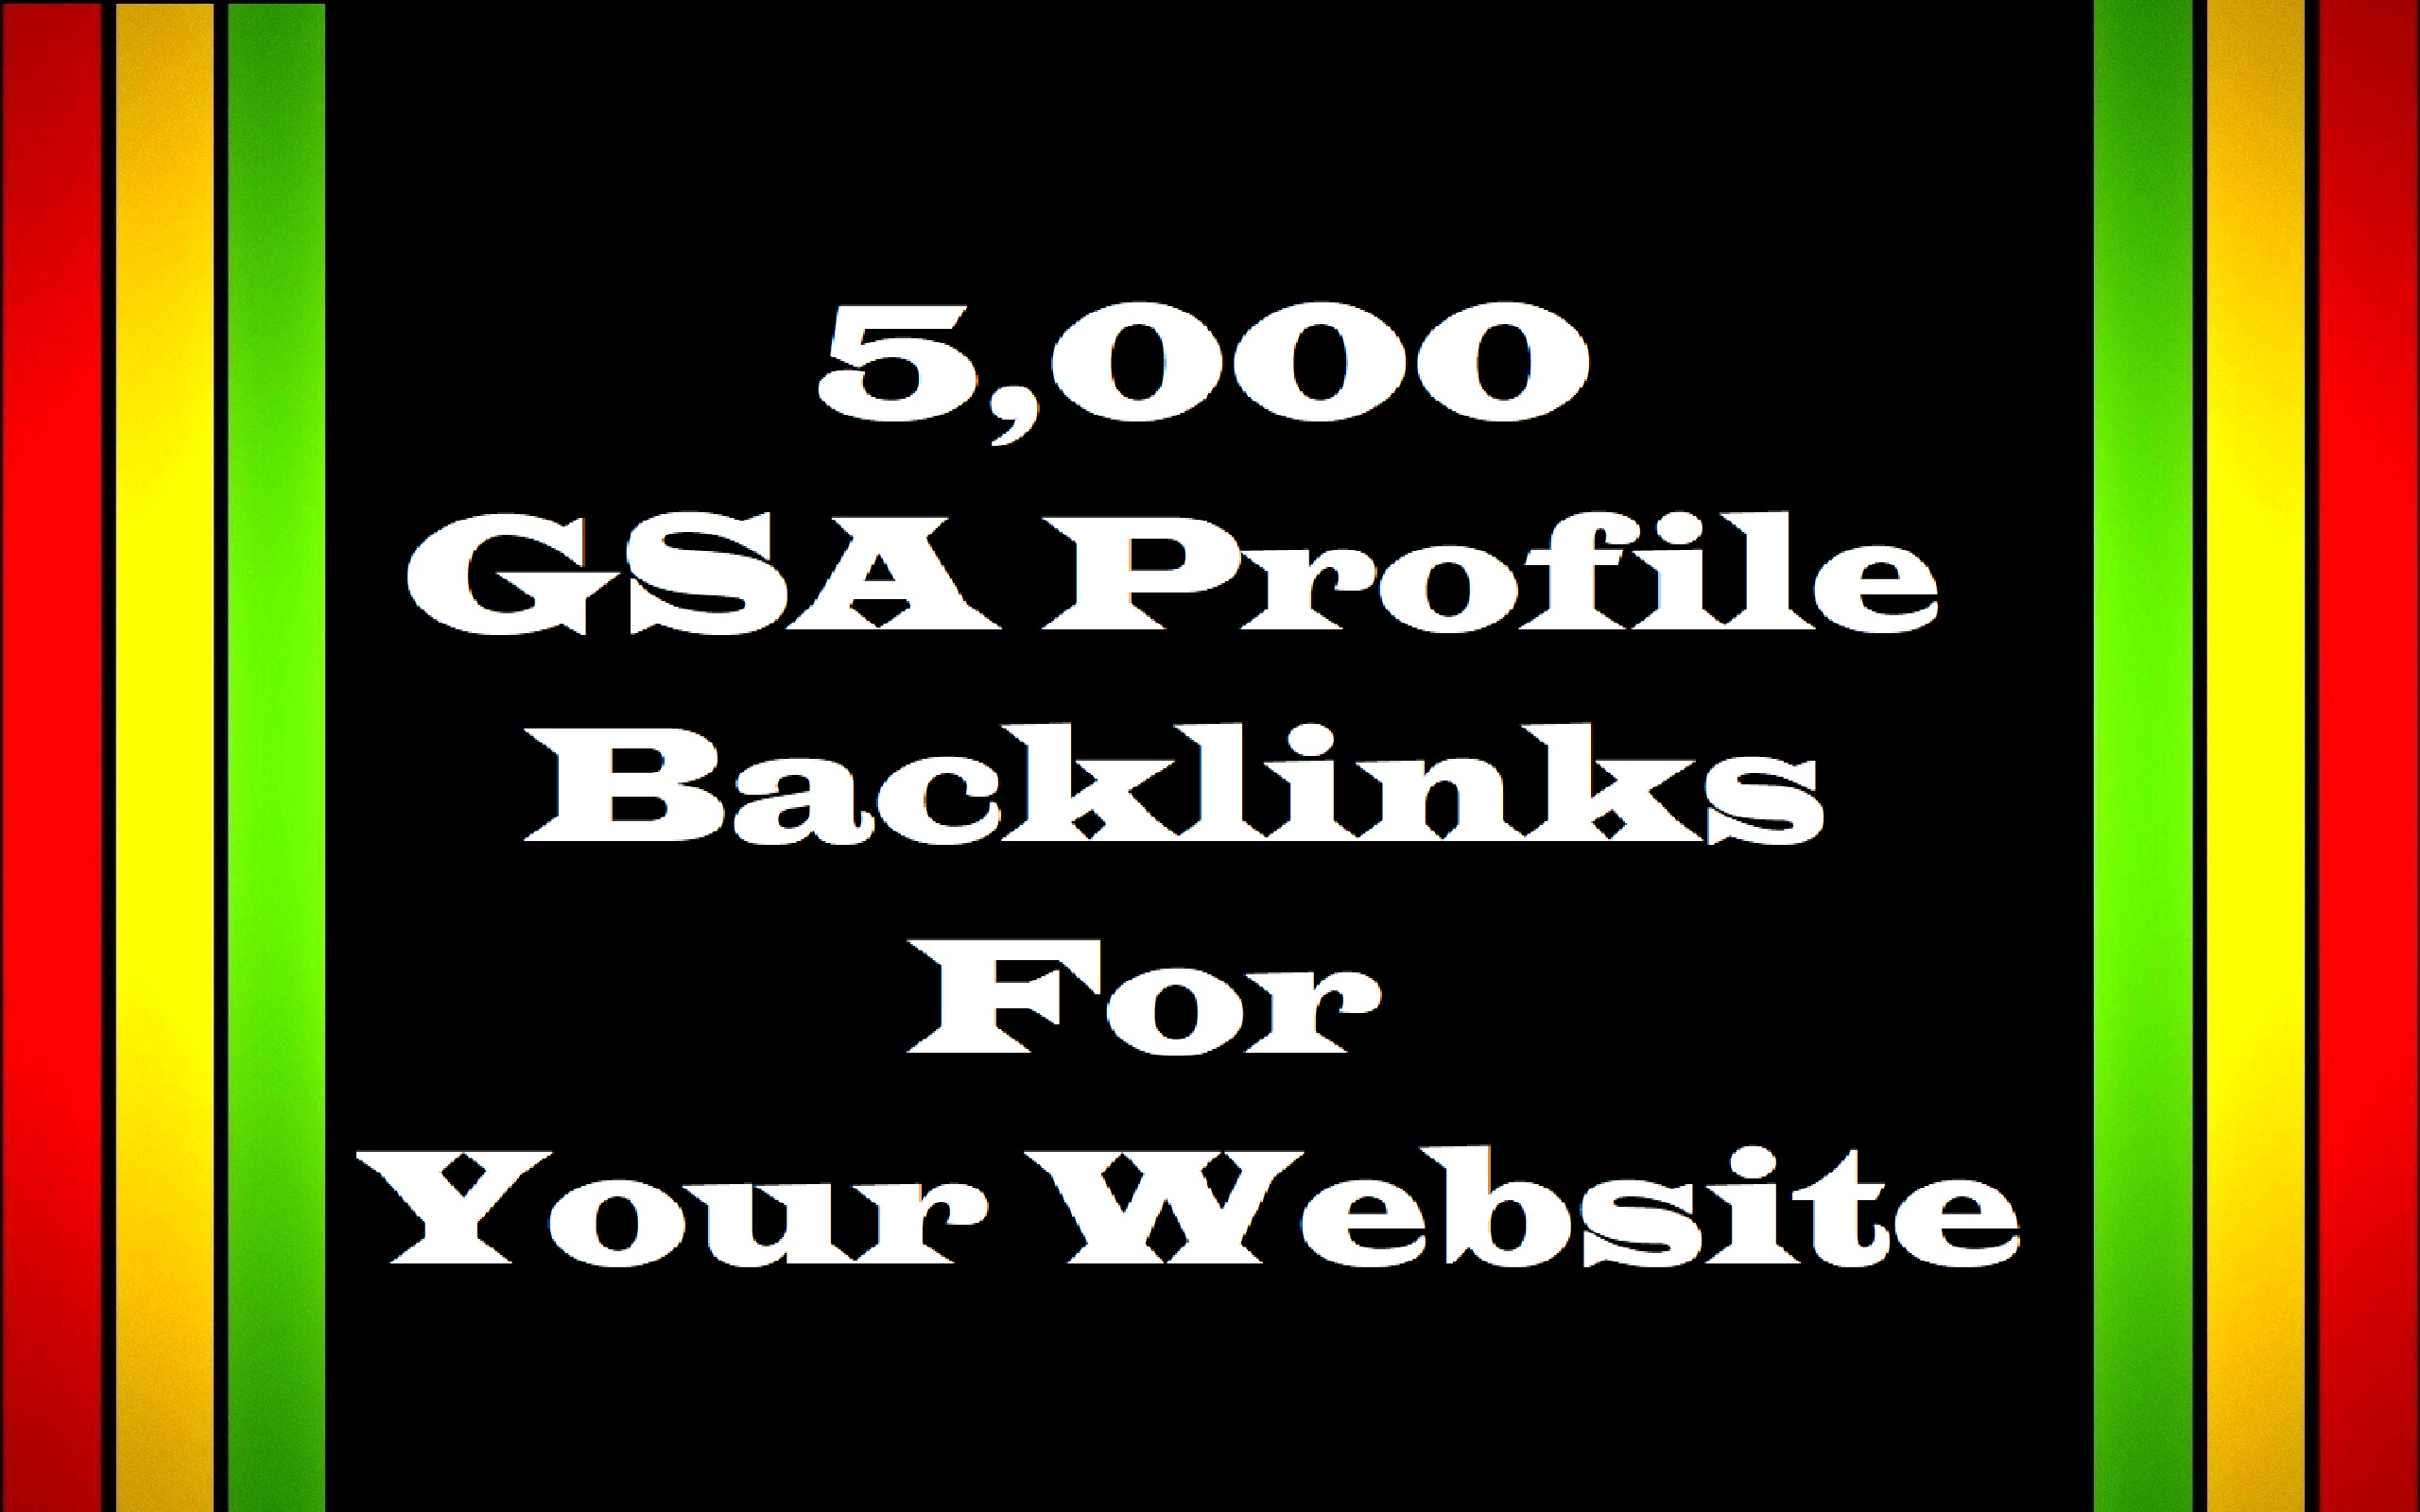 Create 5,000 Profile Backlinks For Your Website by GSA